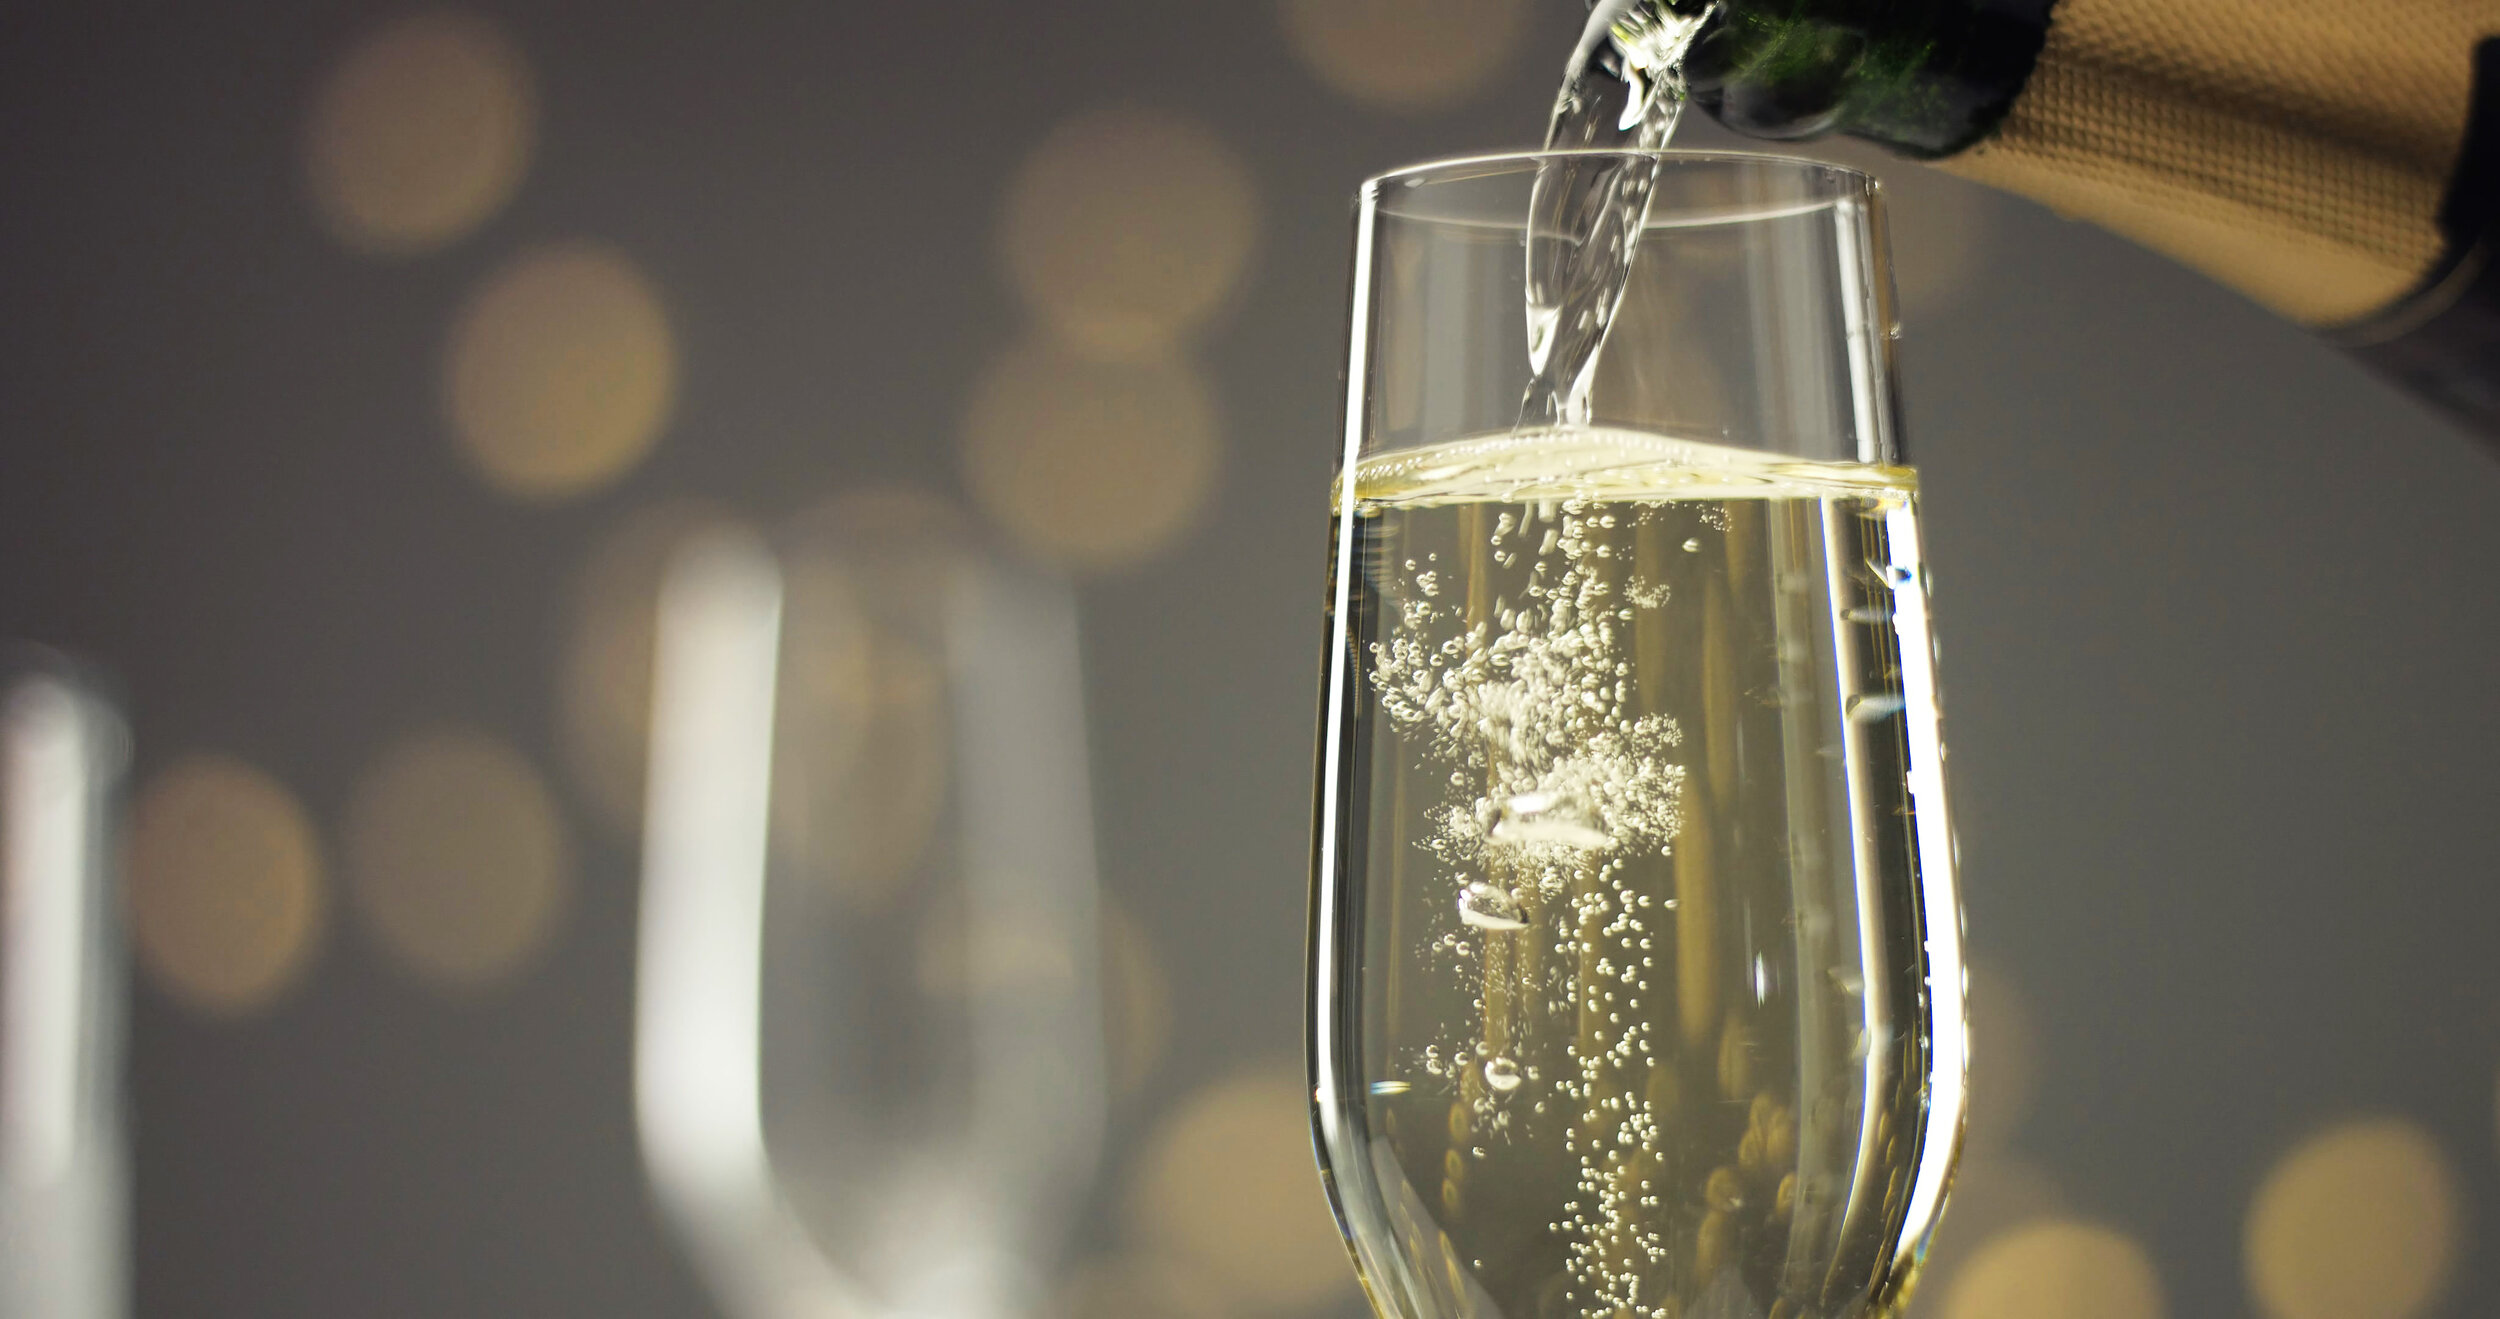 Sparkling Fridays - Cava by the Glass $8 (reg. $12)Cava by the Bottle $40 (reg. $50)